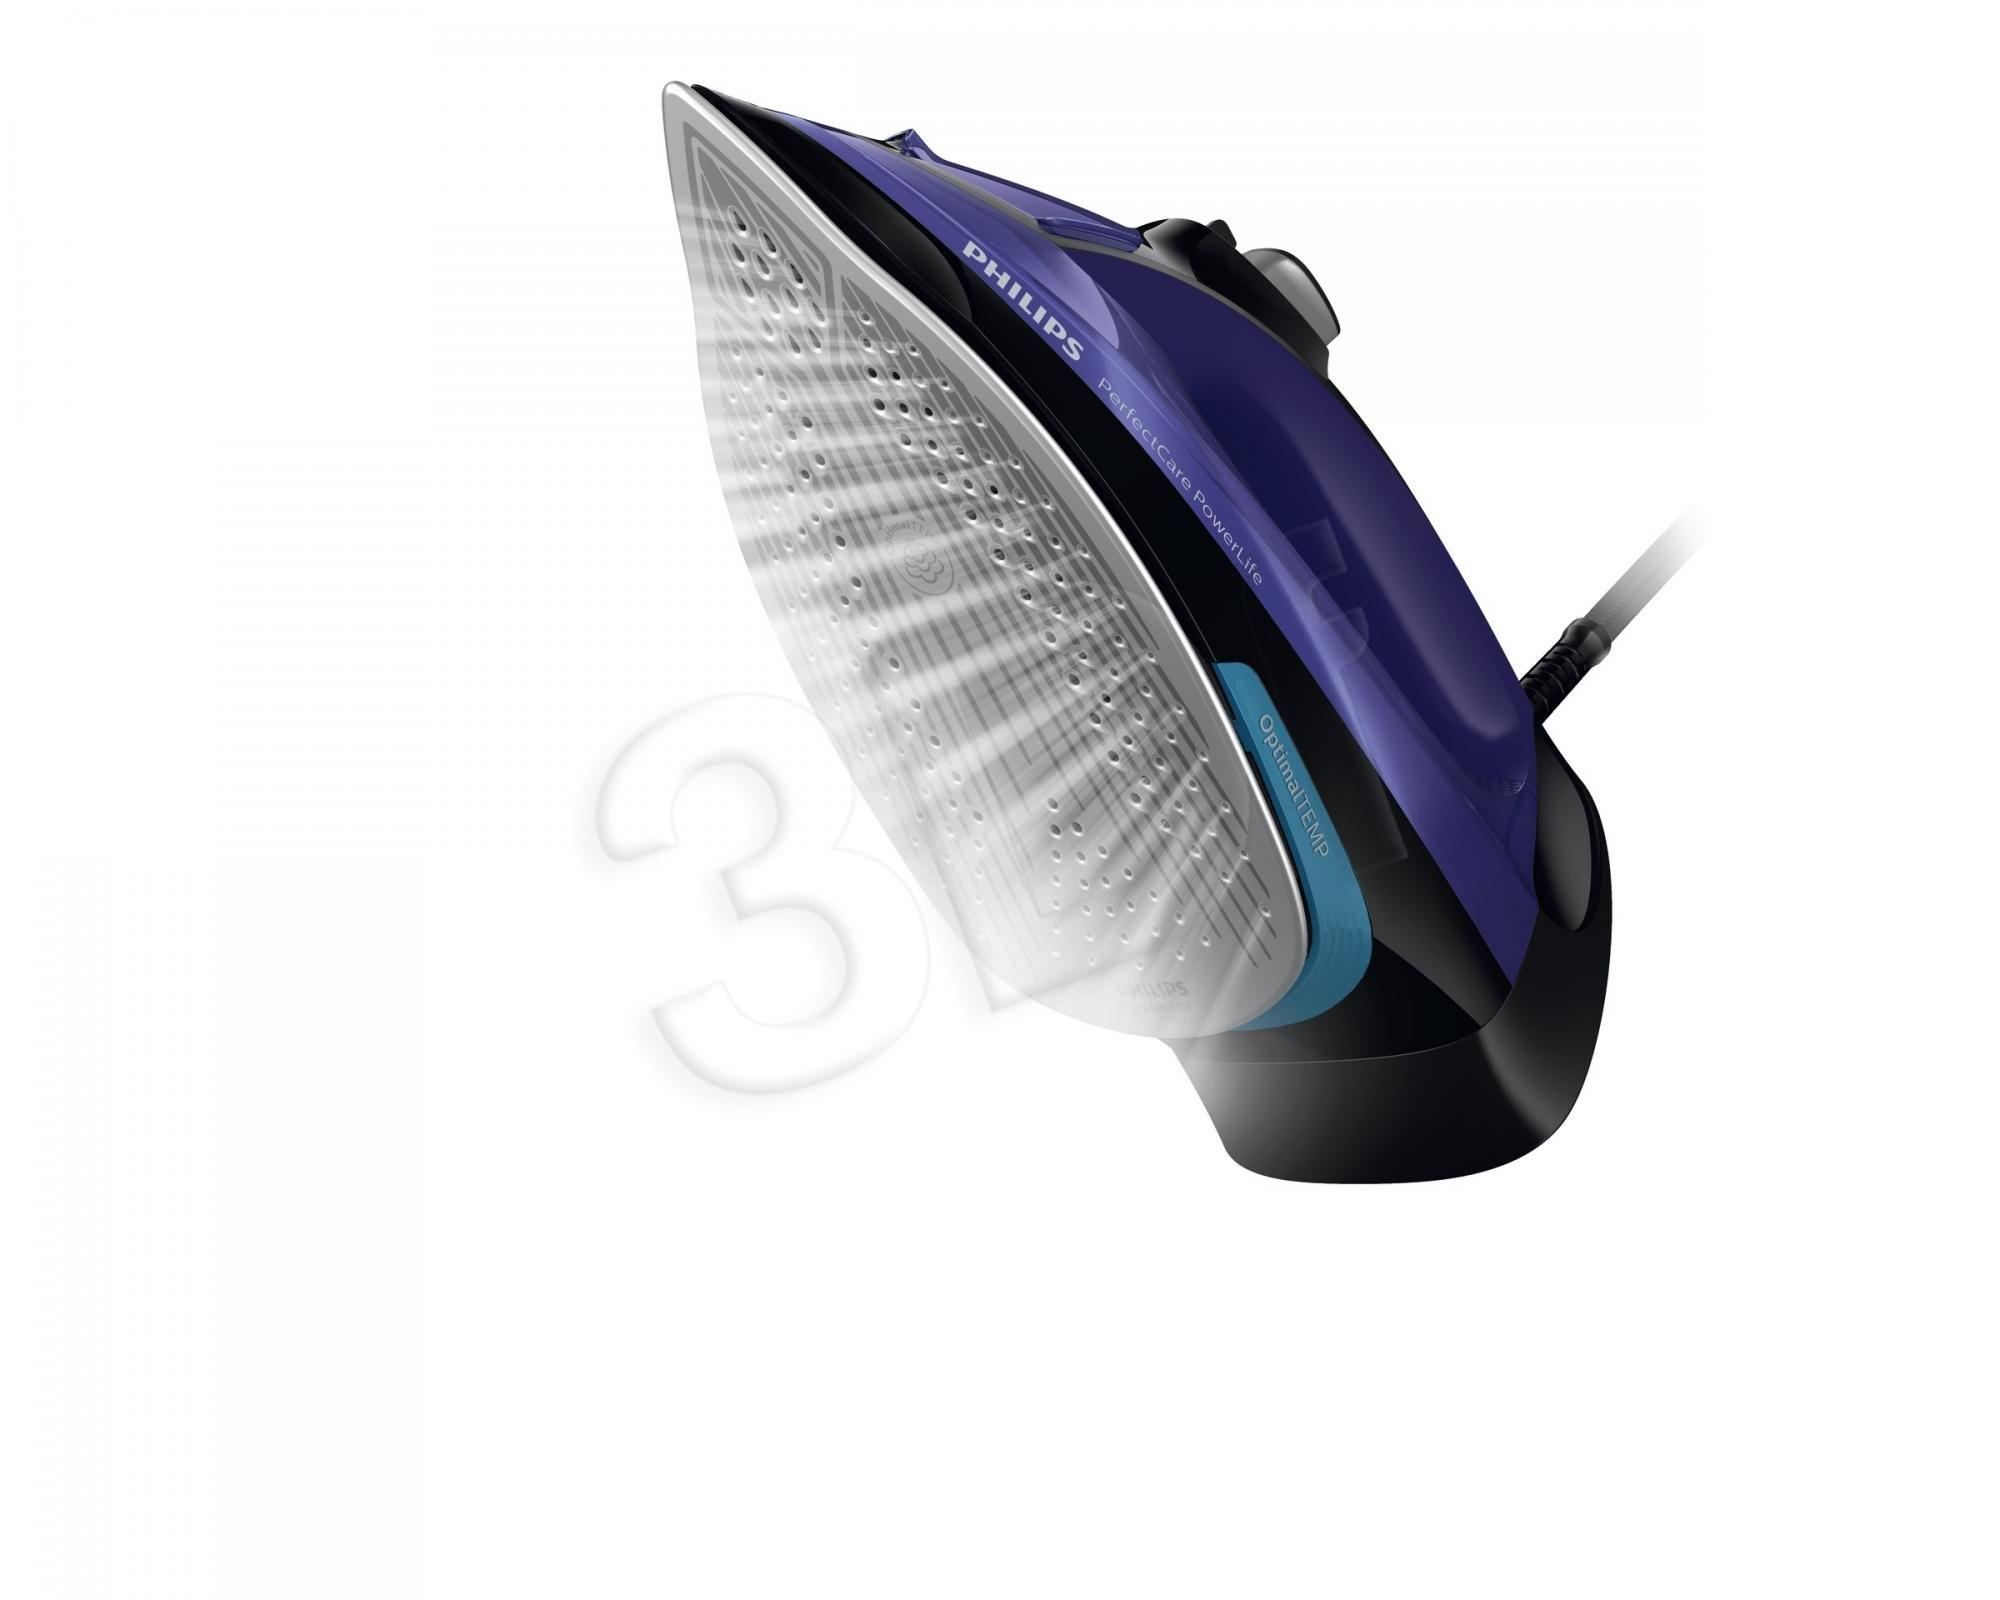 Philips PerfectCare GC3925/30 iron Steam iron SteamGlide Plus soleplate Black,Purple 2500 W Gludeklis